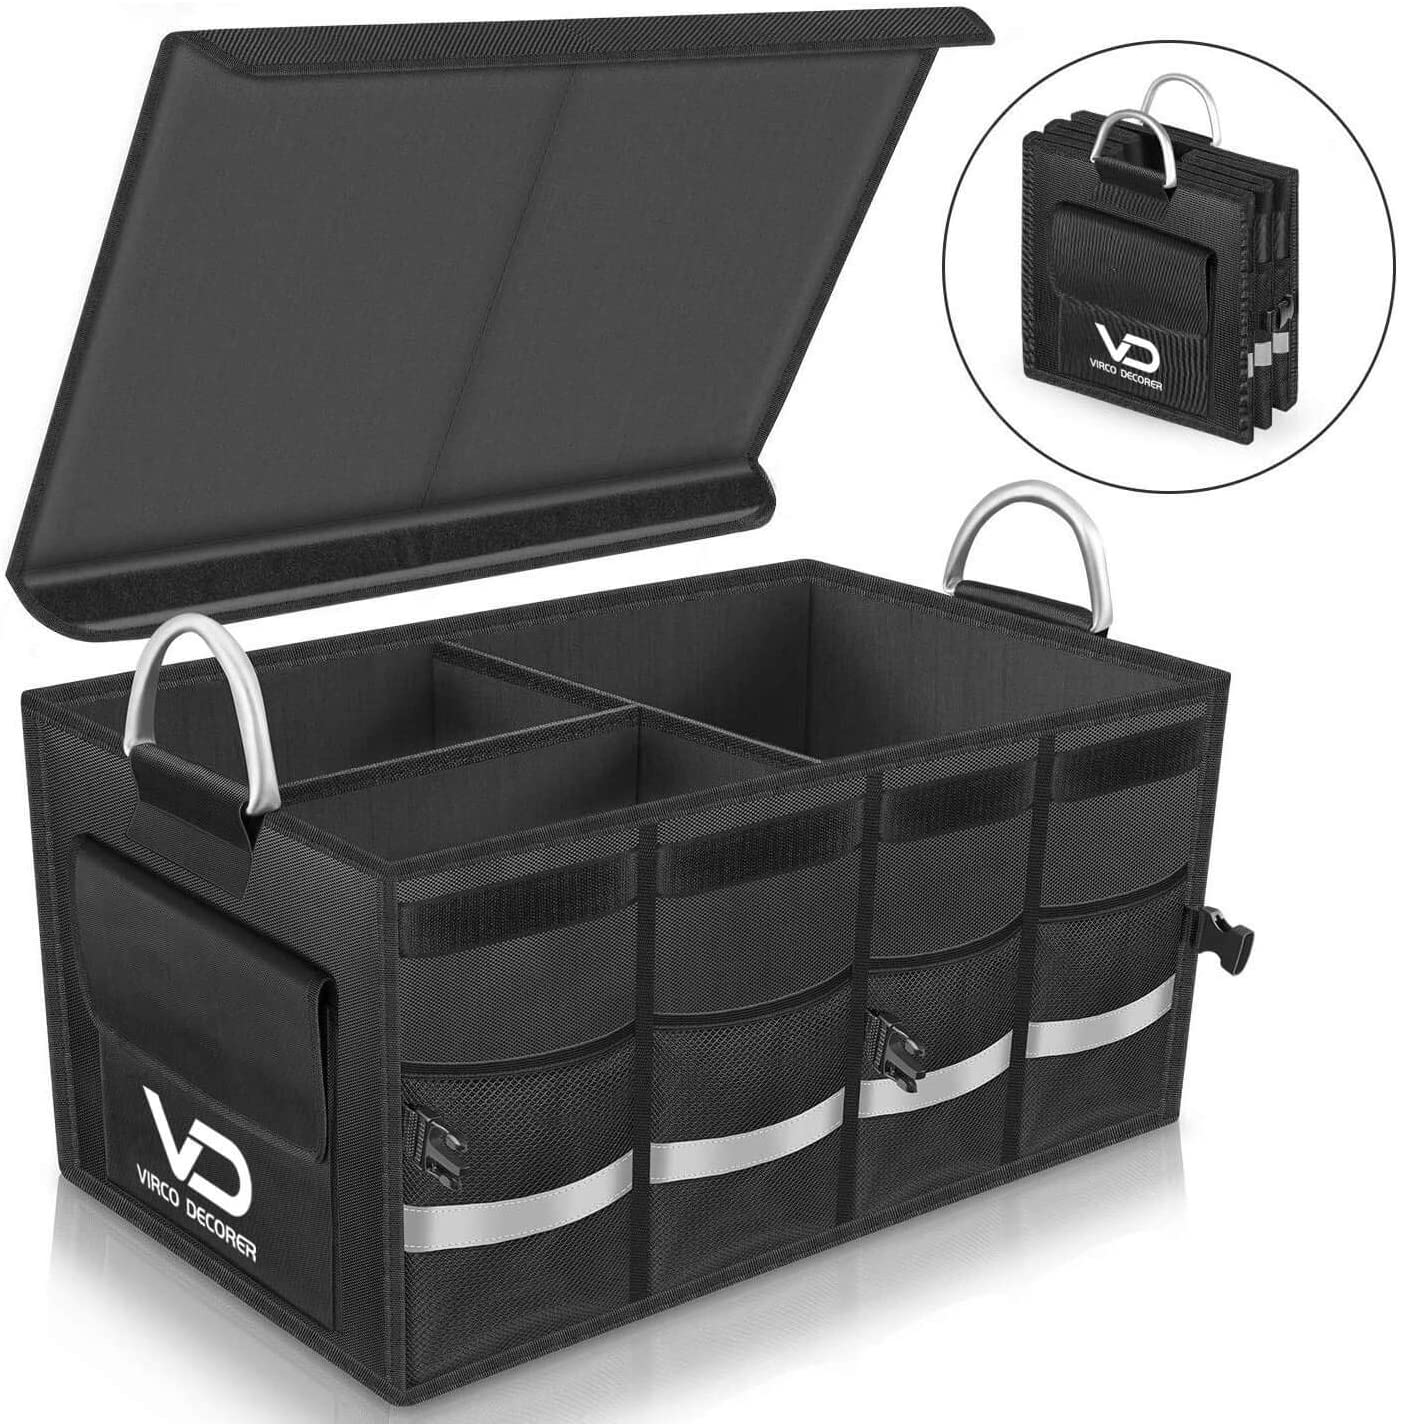 VD Cargo Trunk Organizers for SUV, Universal Car Organizer Trunk with Lid, Truck Organizer Aluminum Handle, Foldable Car Storage Organizer, Easy Expandable, Durable Dirty-Resistant Oxford Fabric (63L)